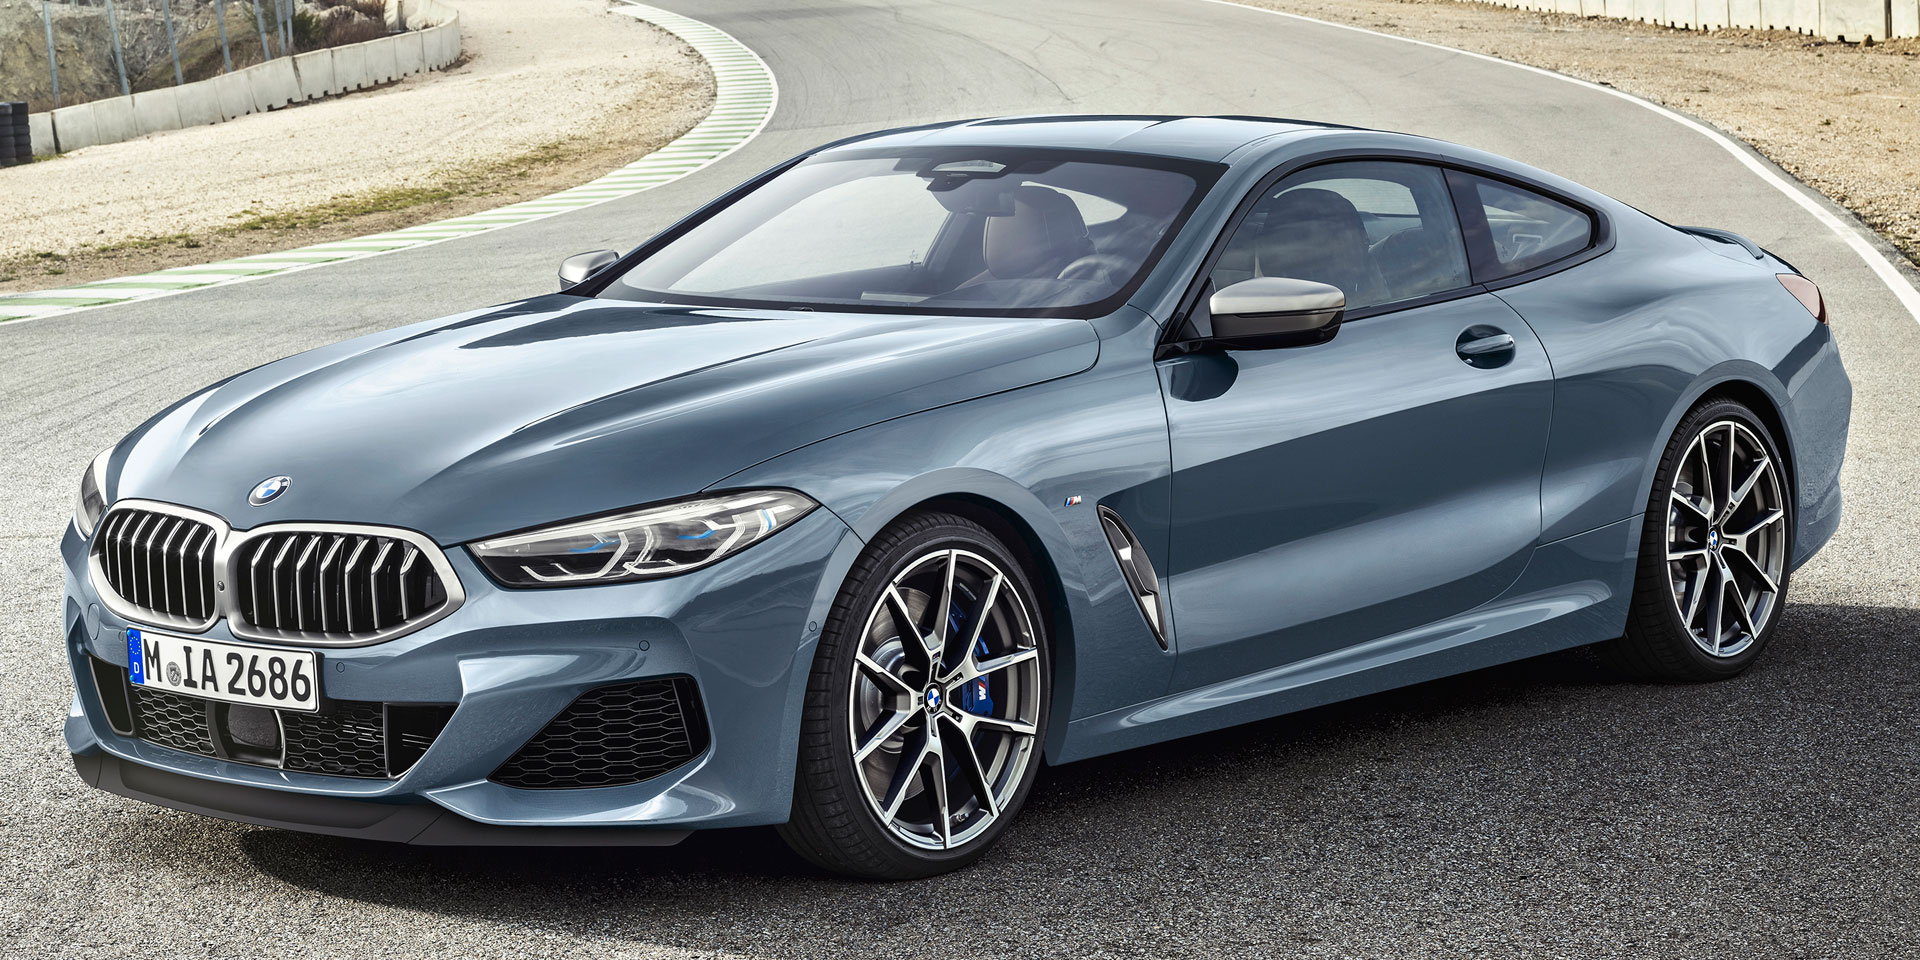 2019 Bmw 8 Series Vehicles On Display Chicago Auto Show